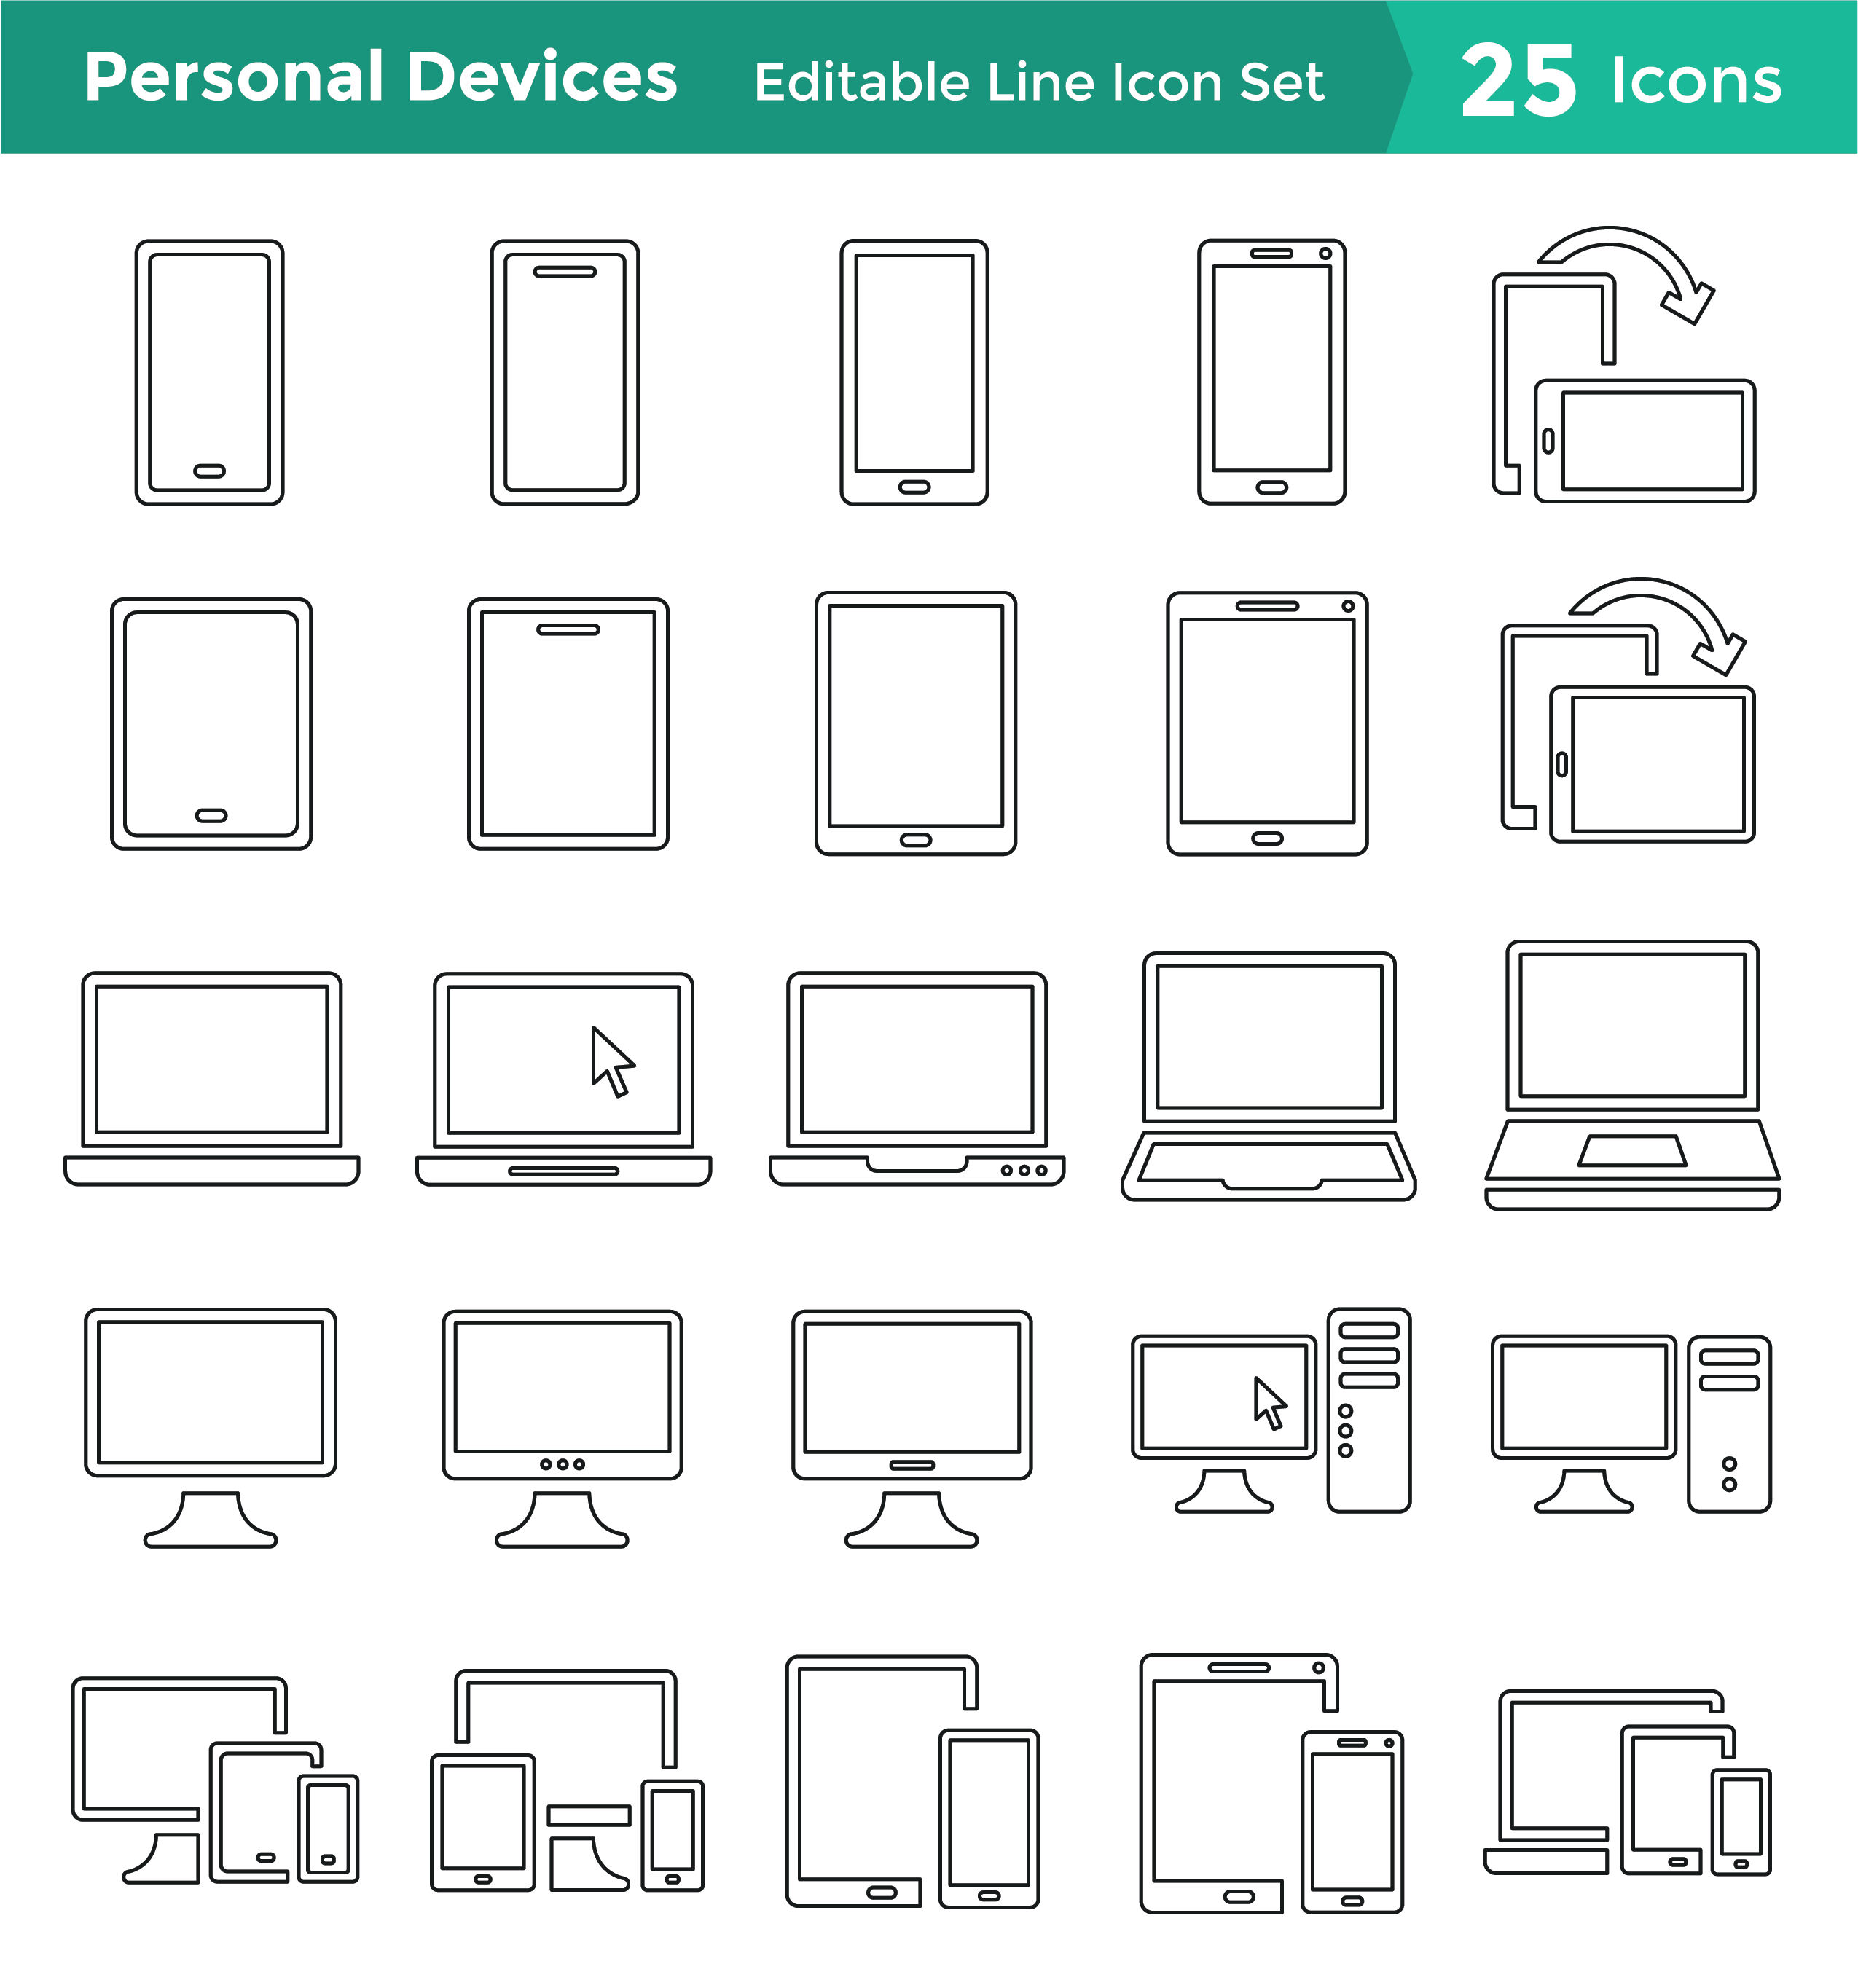 Personal Devices Icon Set: Editable Line